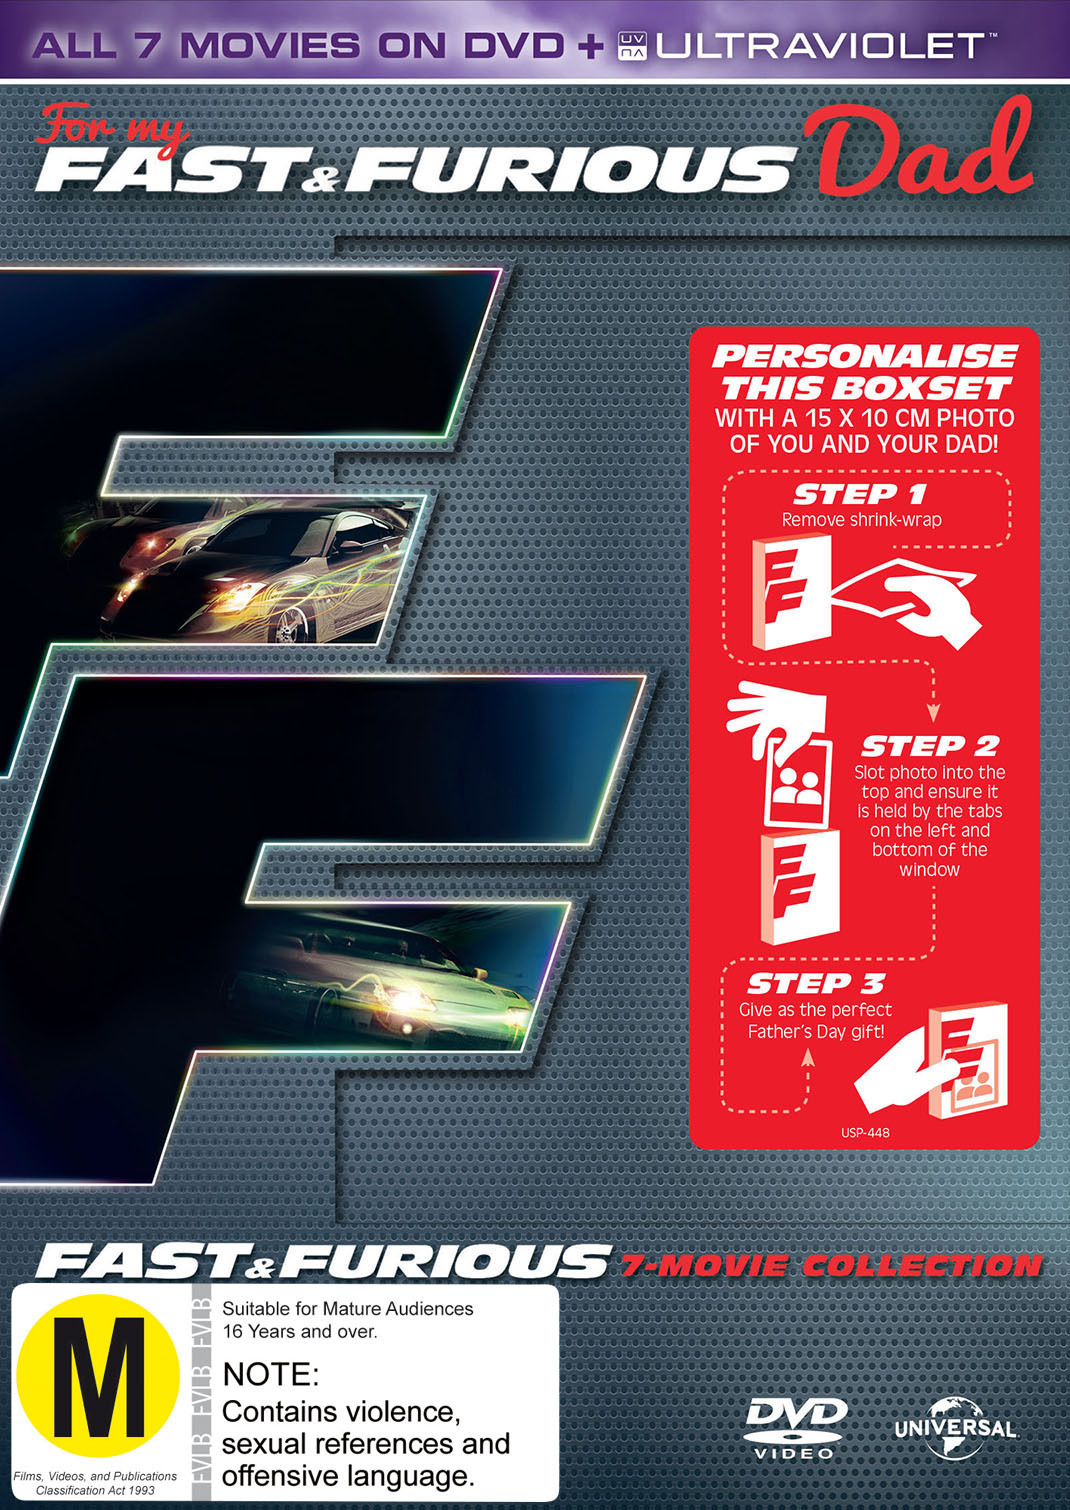 fast and furious 1 7 uv photo dvd buy now at mighty ape nz. Black Bedroom Furniture Sets. Home Design Ideas